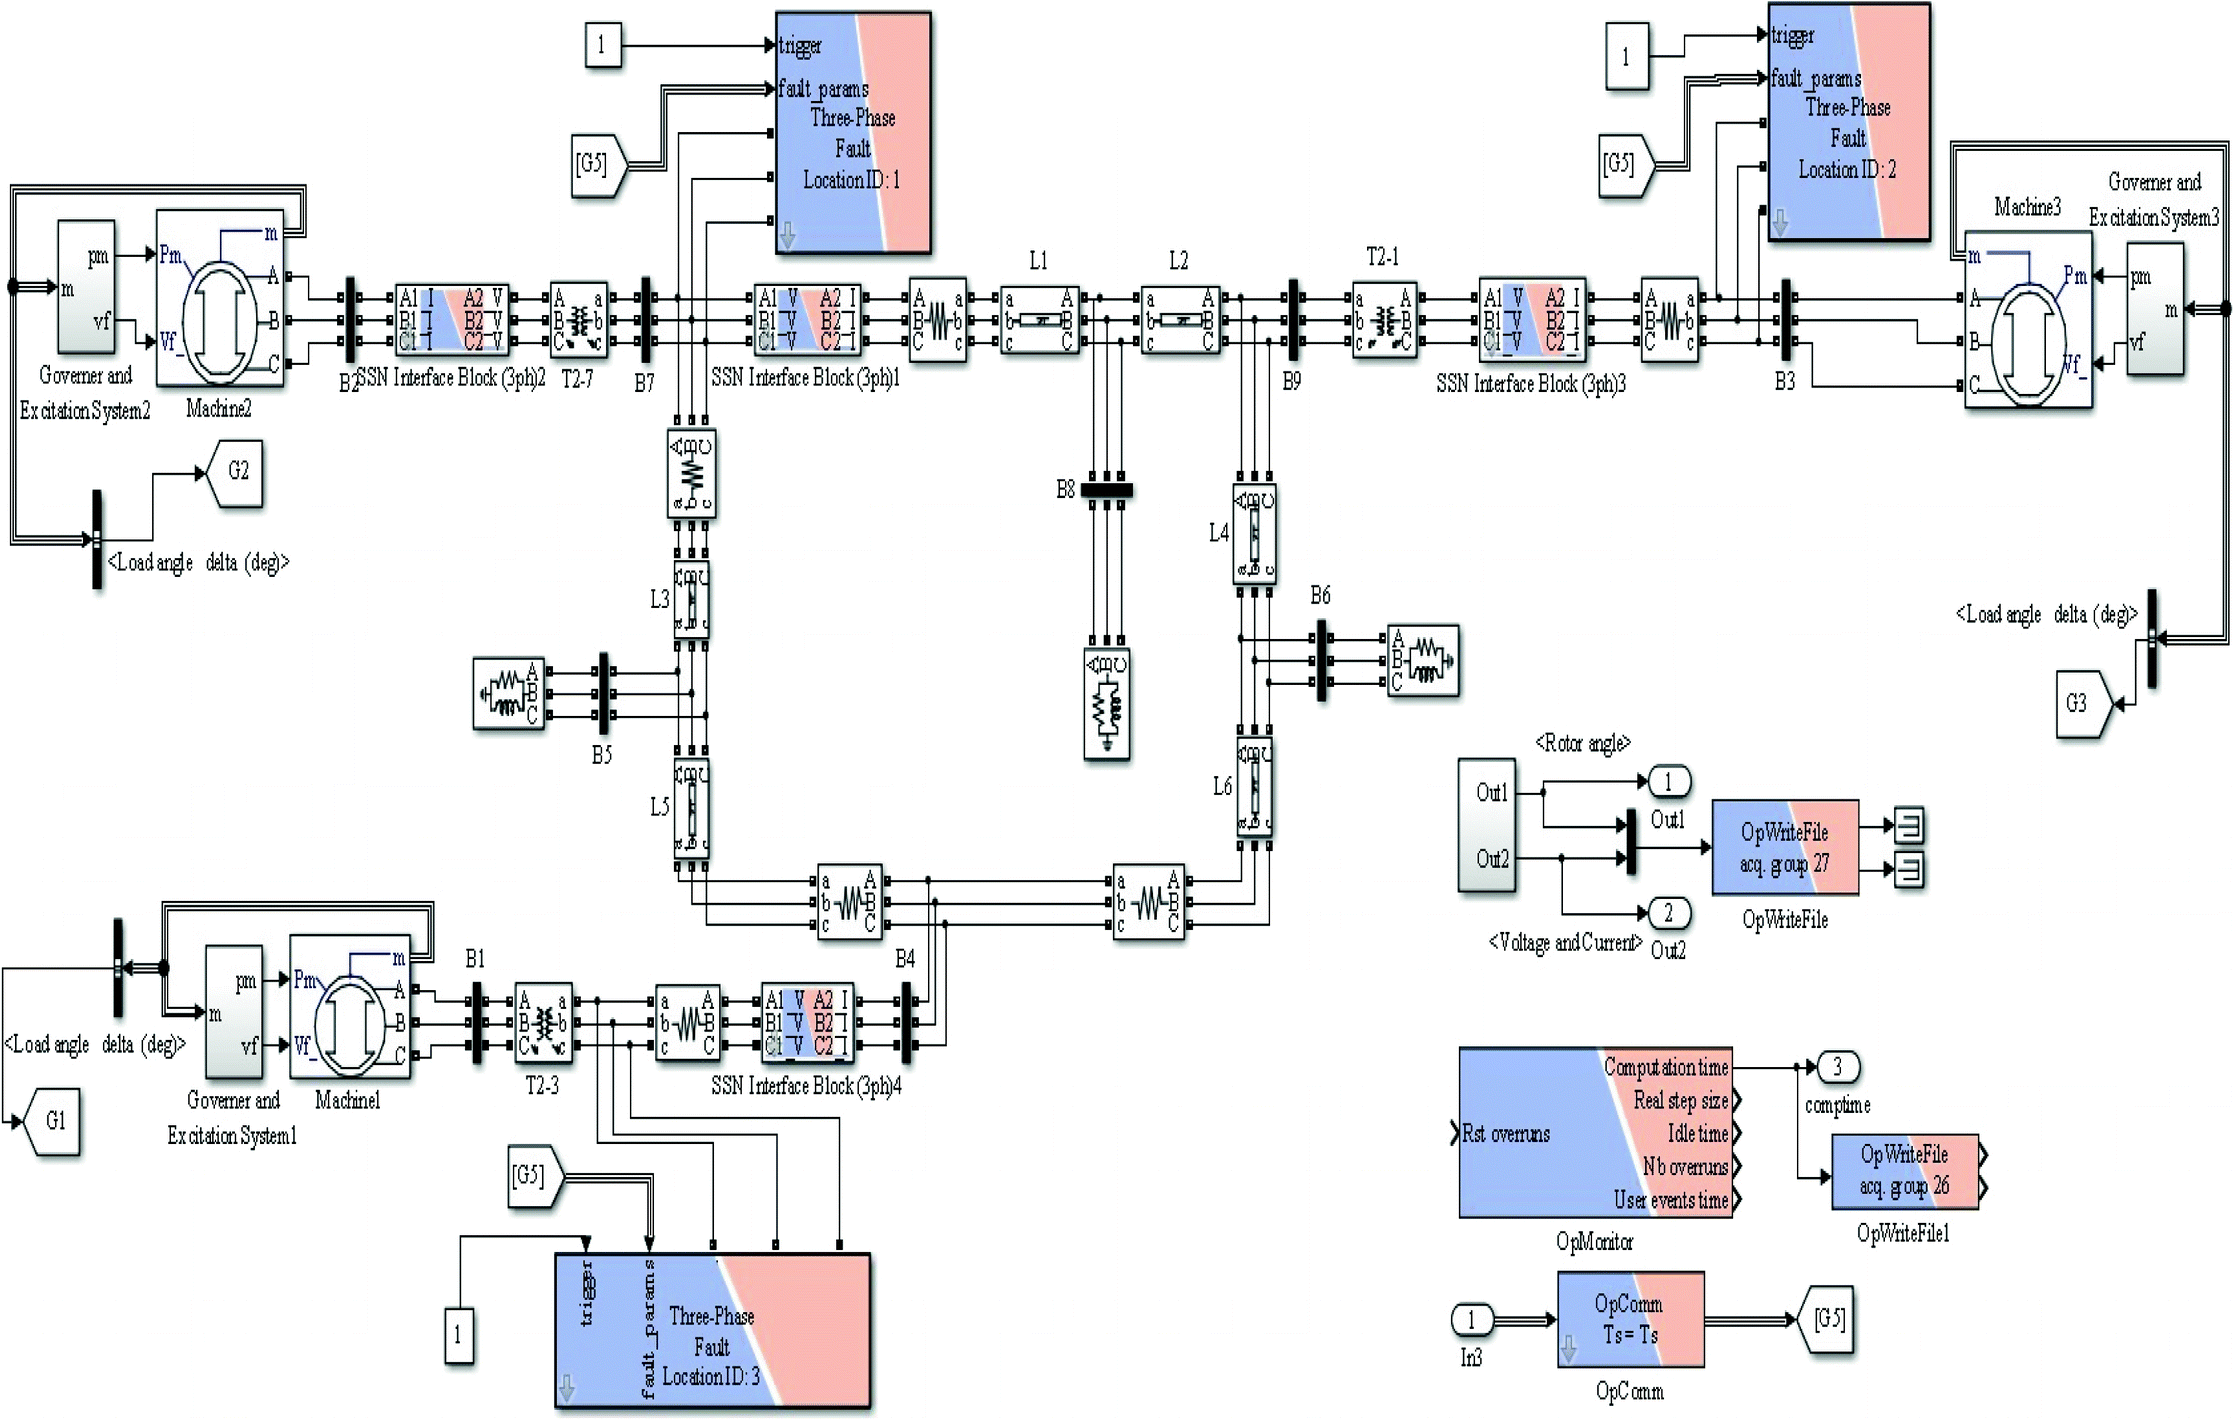 Real Time Simulation of IEEE 9 Bus System for Fault Analysis Using